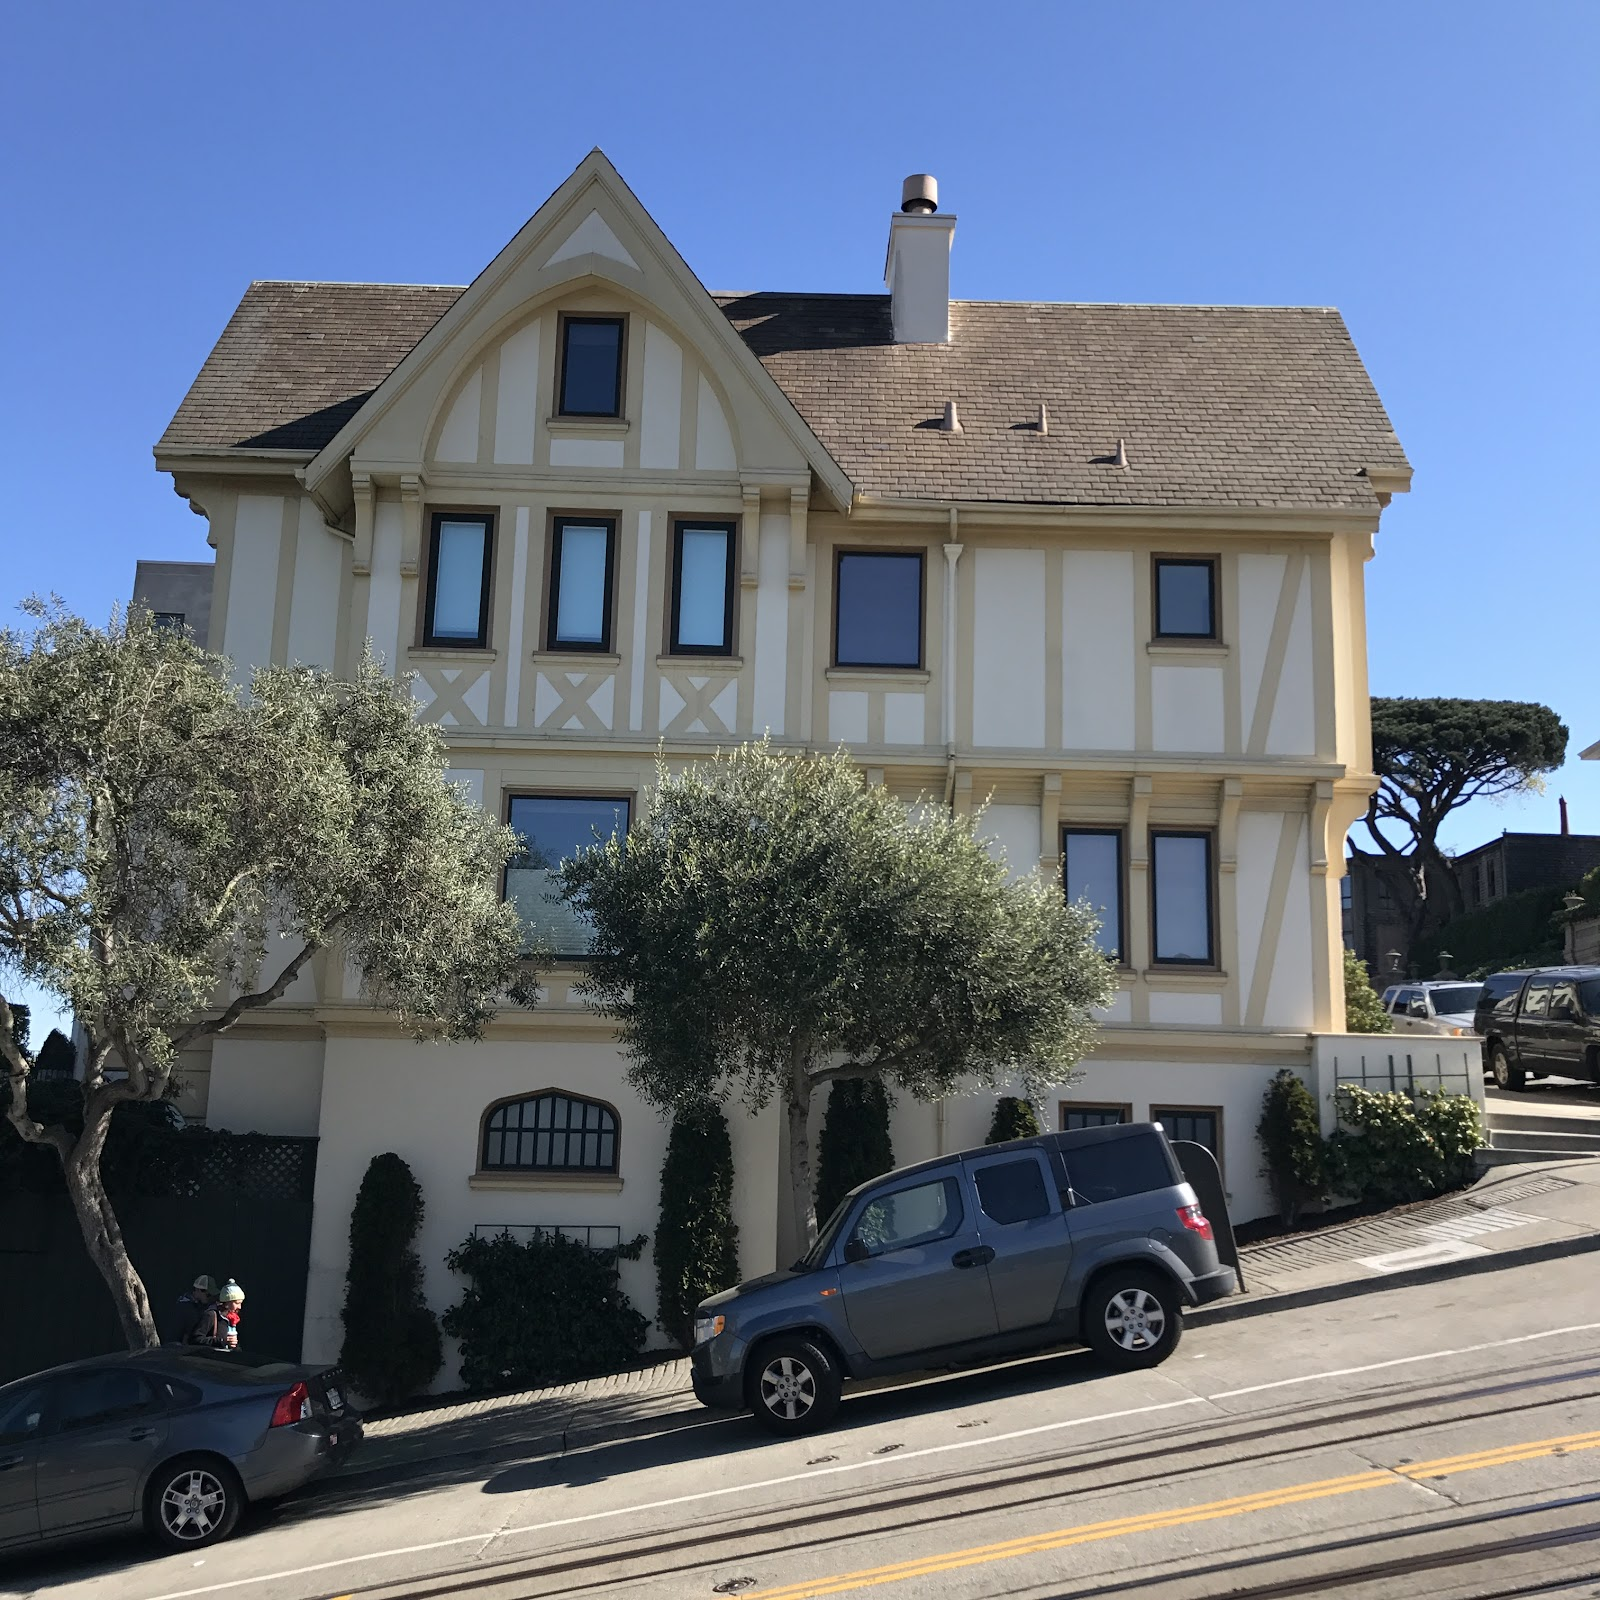 san francisco yellow 3 story home on a crooked street with two cars in the front and iconic tram route